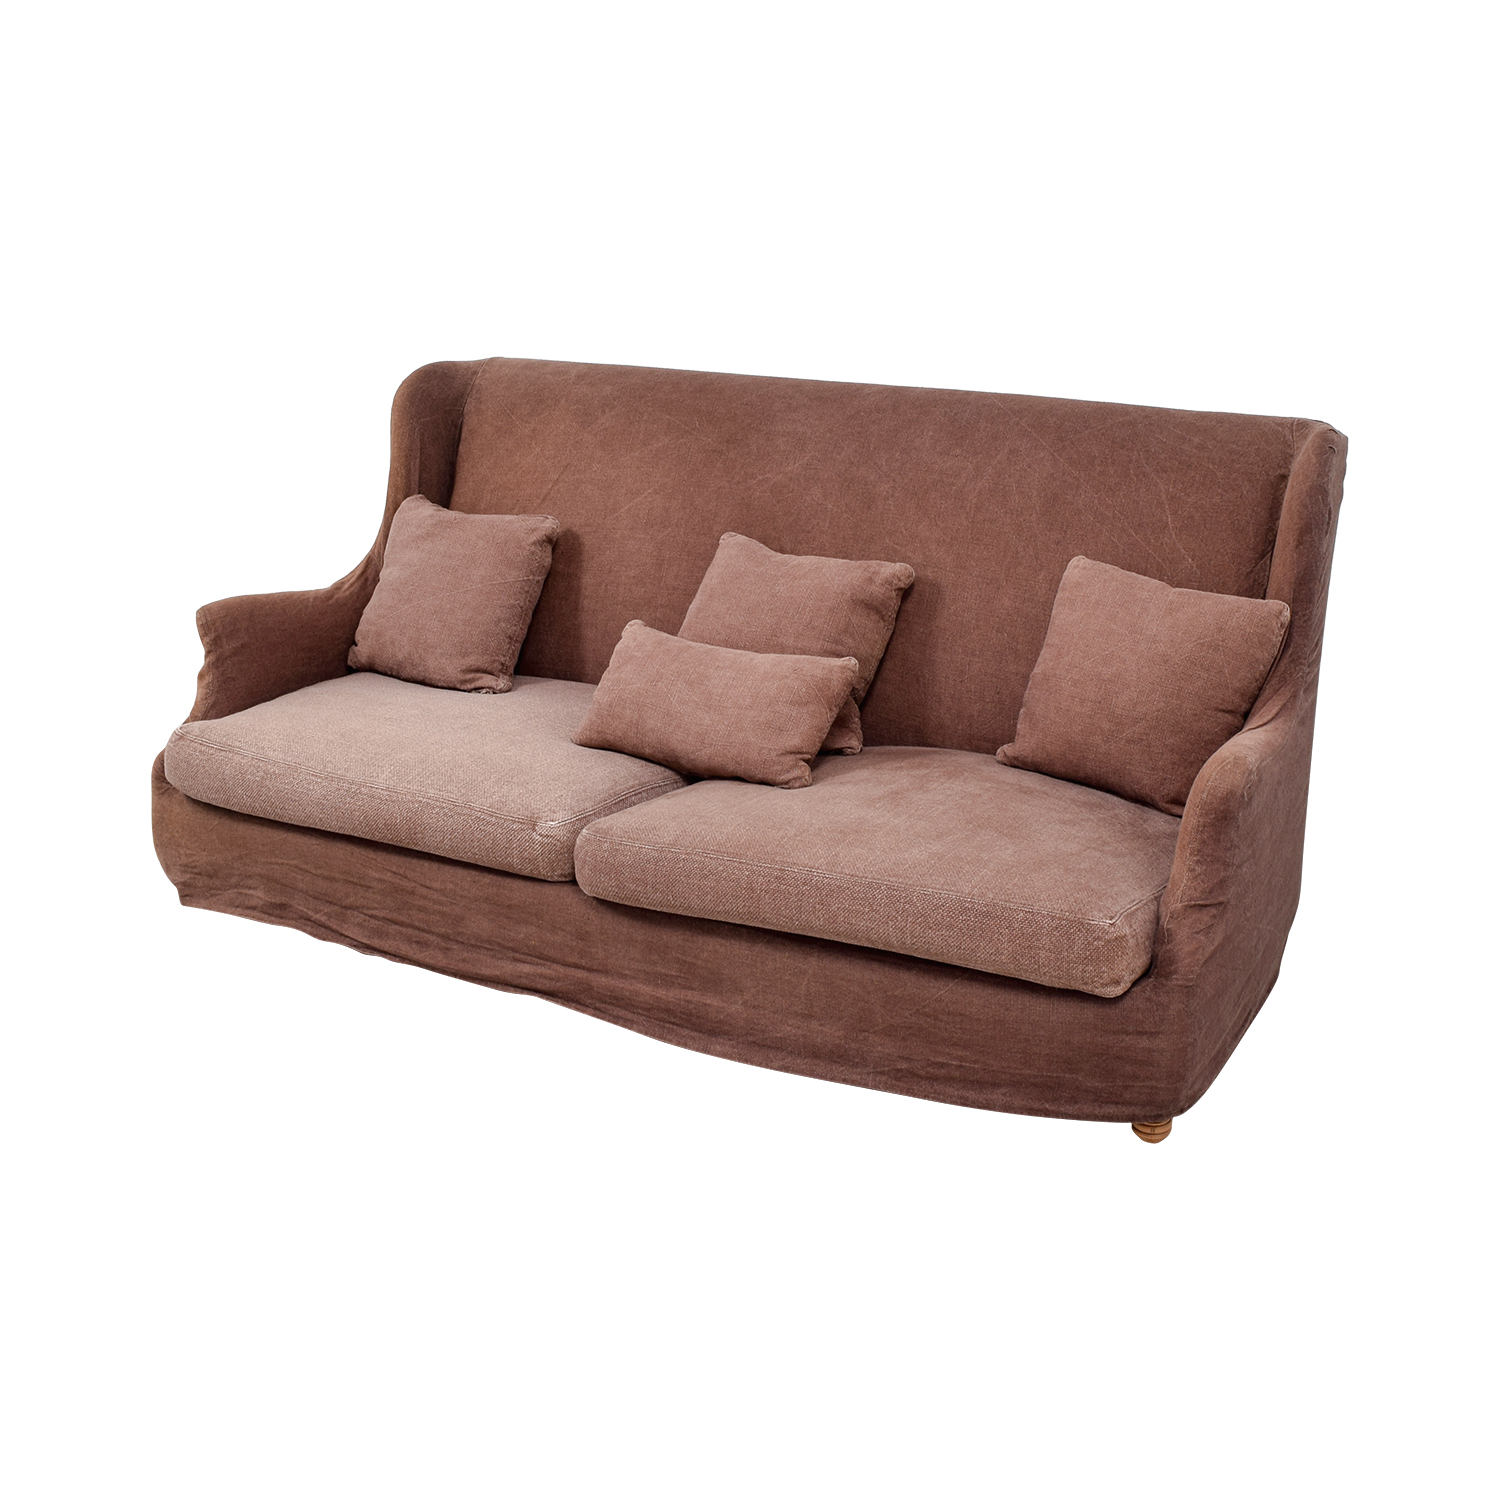 ABC Carpet & Home ABC Carpet & Home Brown Washed Linen Slipcovered Sofa price